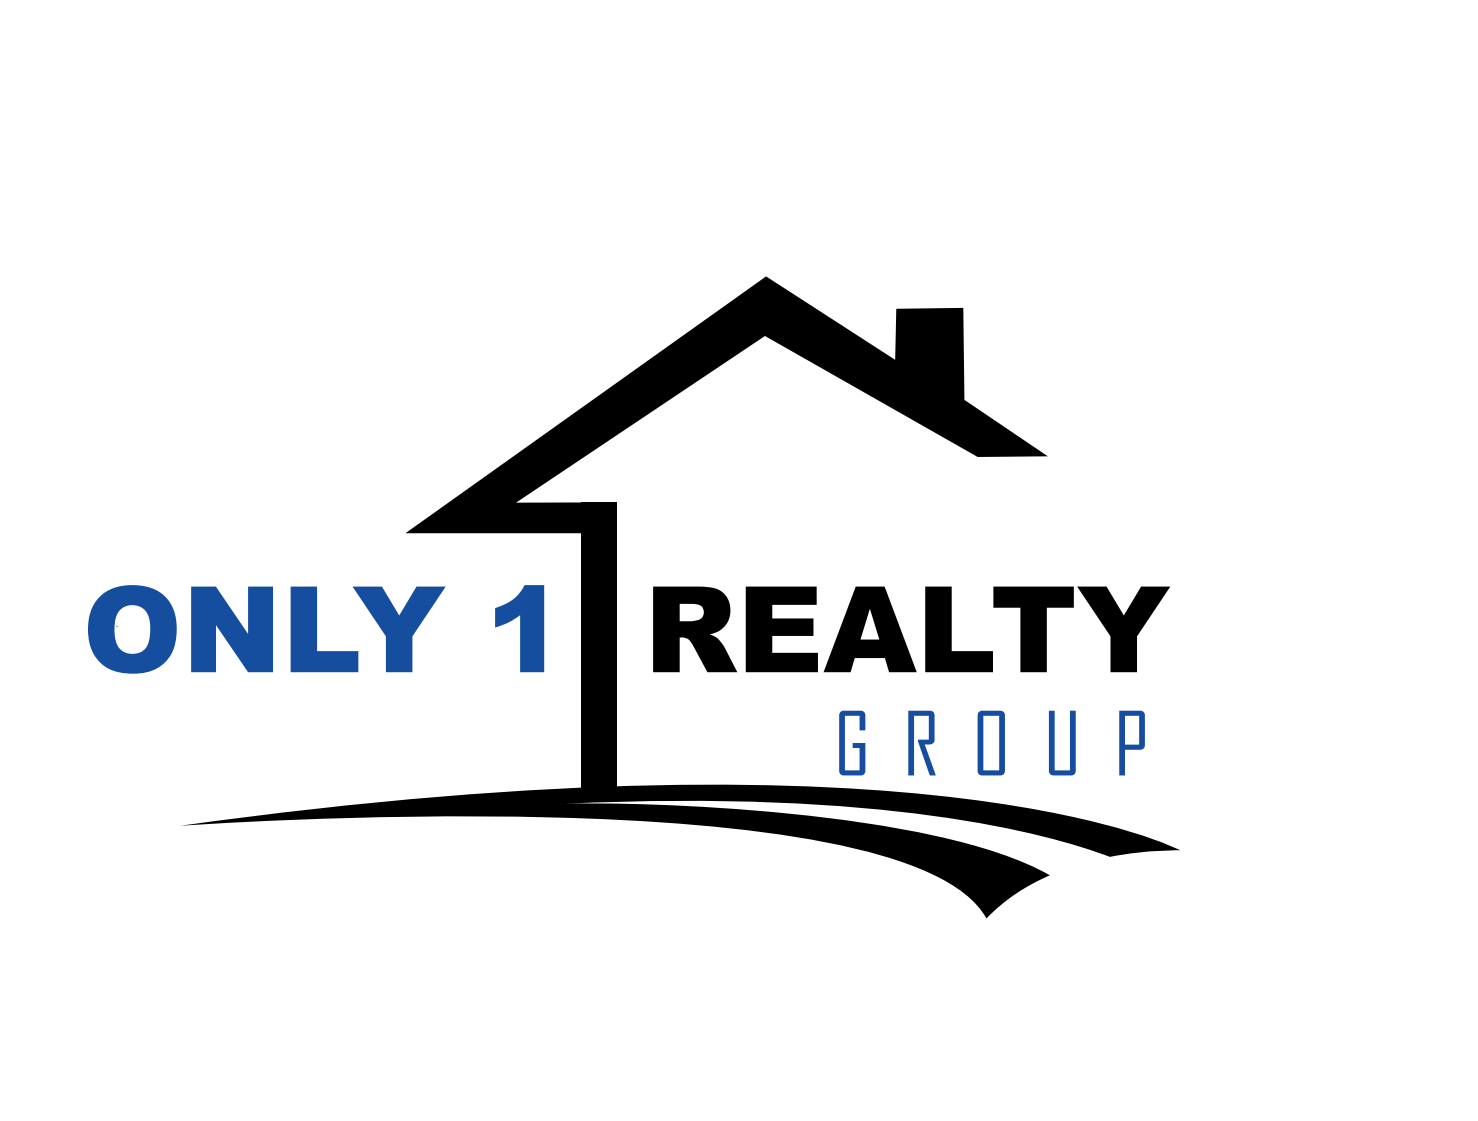 Only 1 Realty Group Image ONLY.png